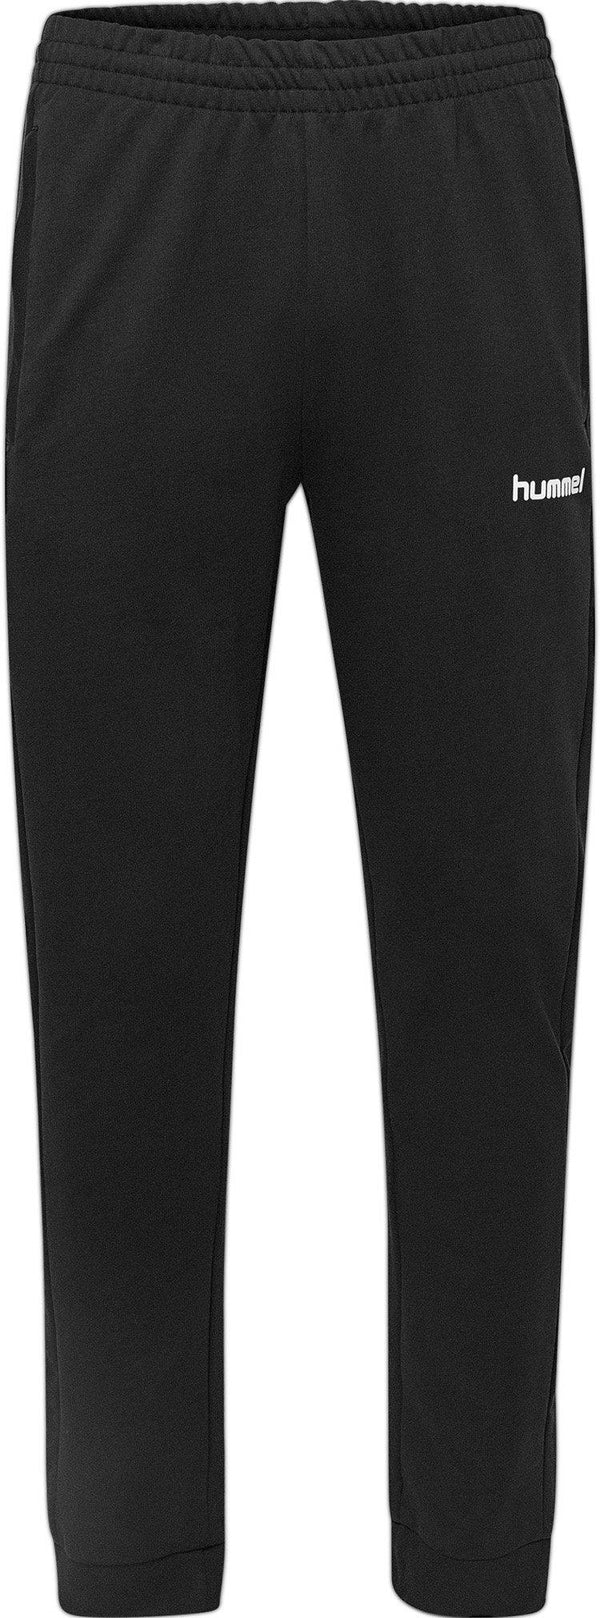 hummel Go Cotton Pants-Soccer Command